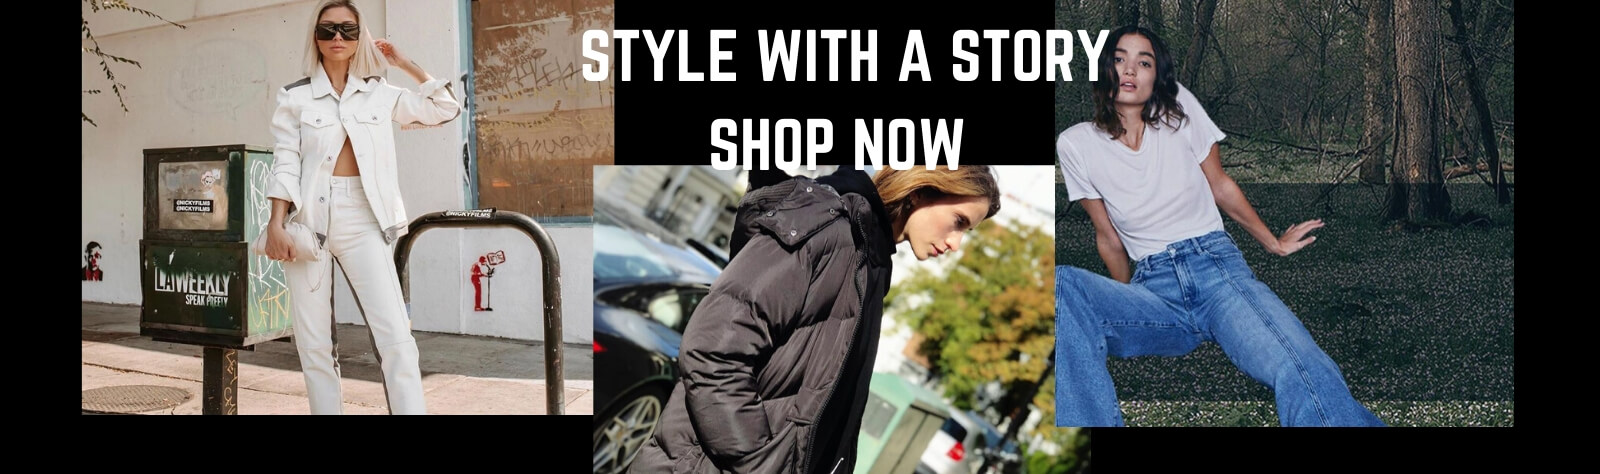 STYLE WITH A STORY SHOP NOW 2